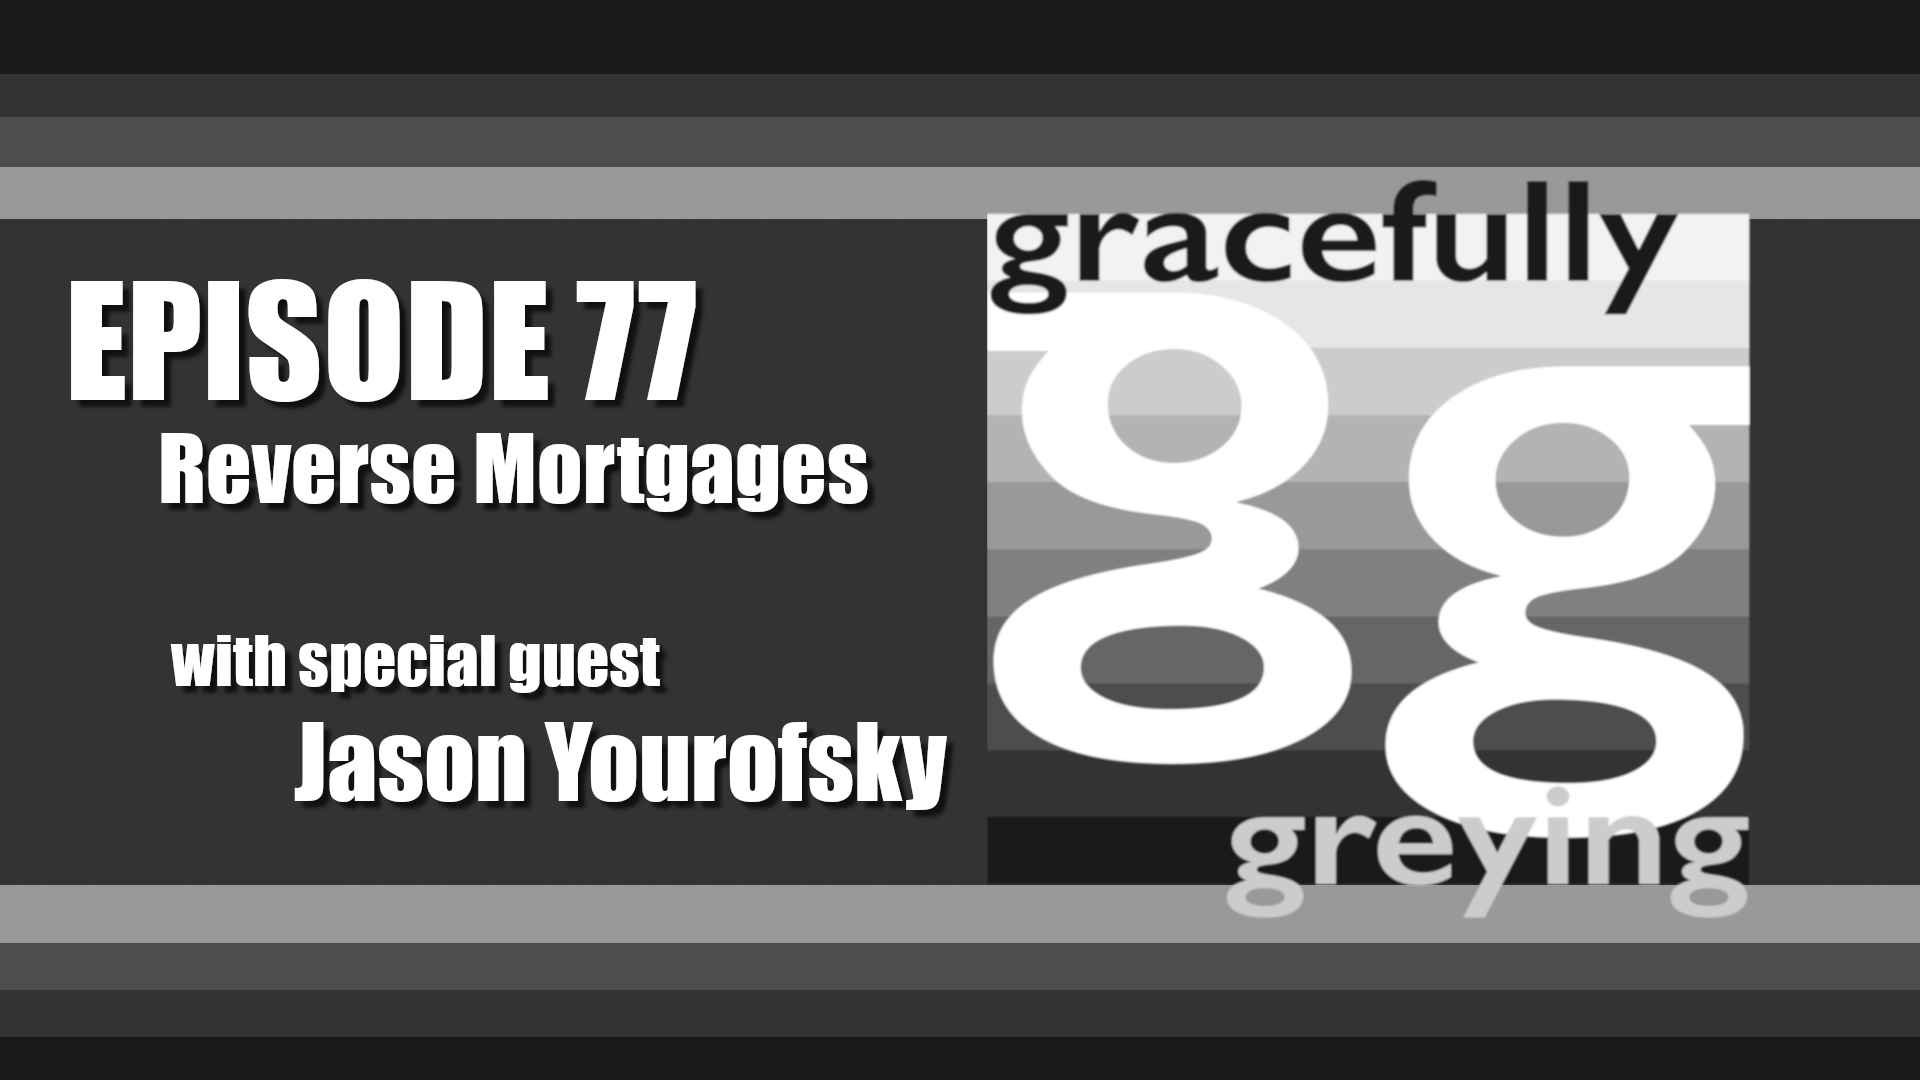 Gracefully Greying - Episode 77